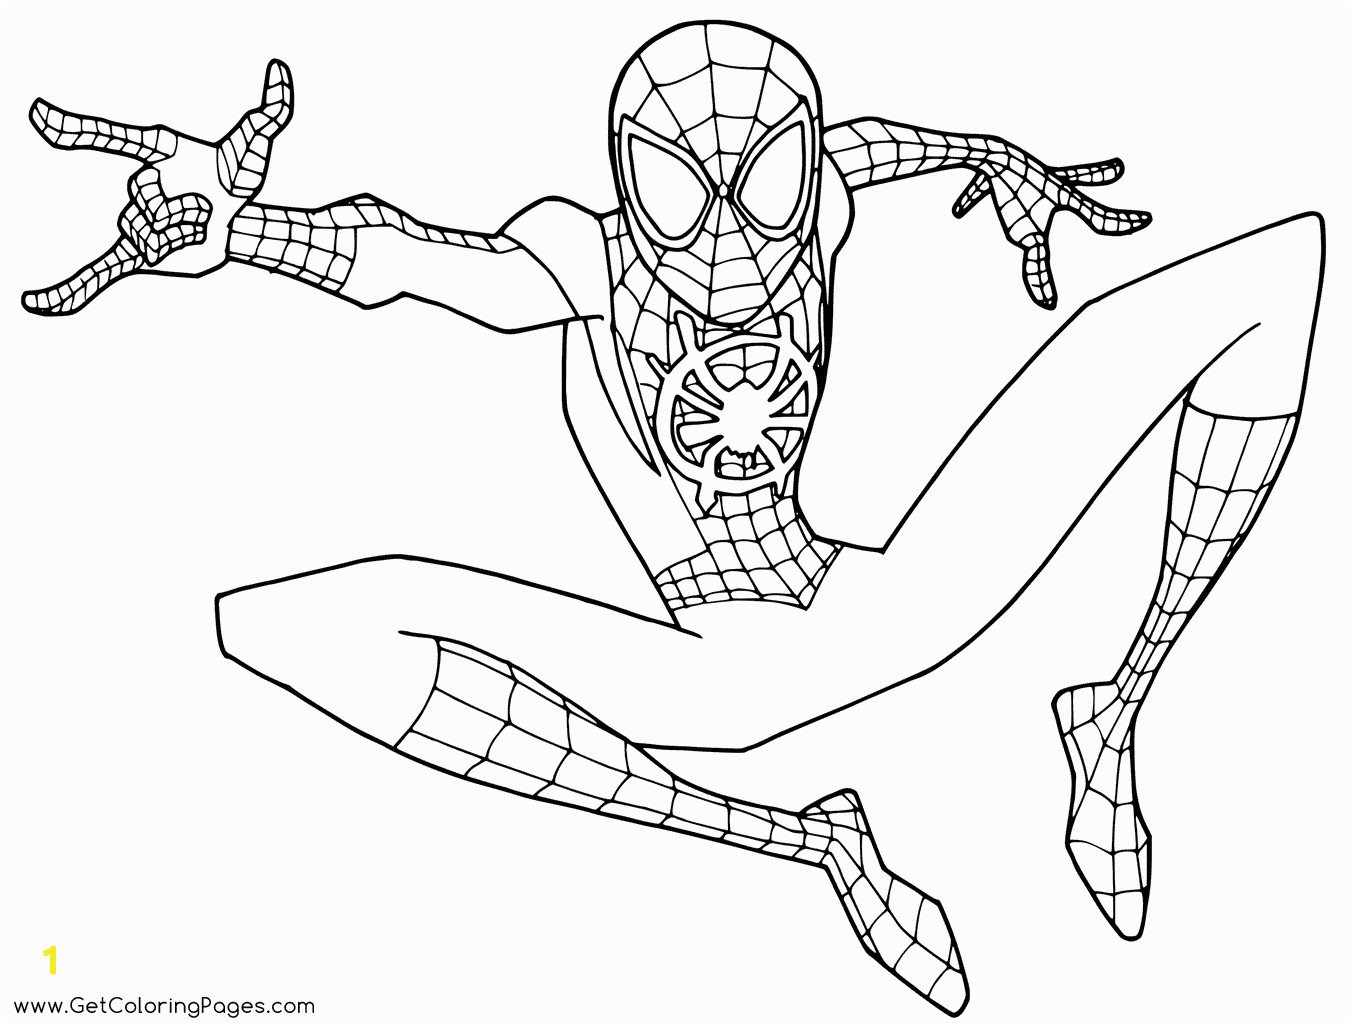 spider girl coloring pages man into the verse pop walgreens woman spidey spiderman lego anime with funko